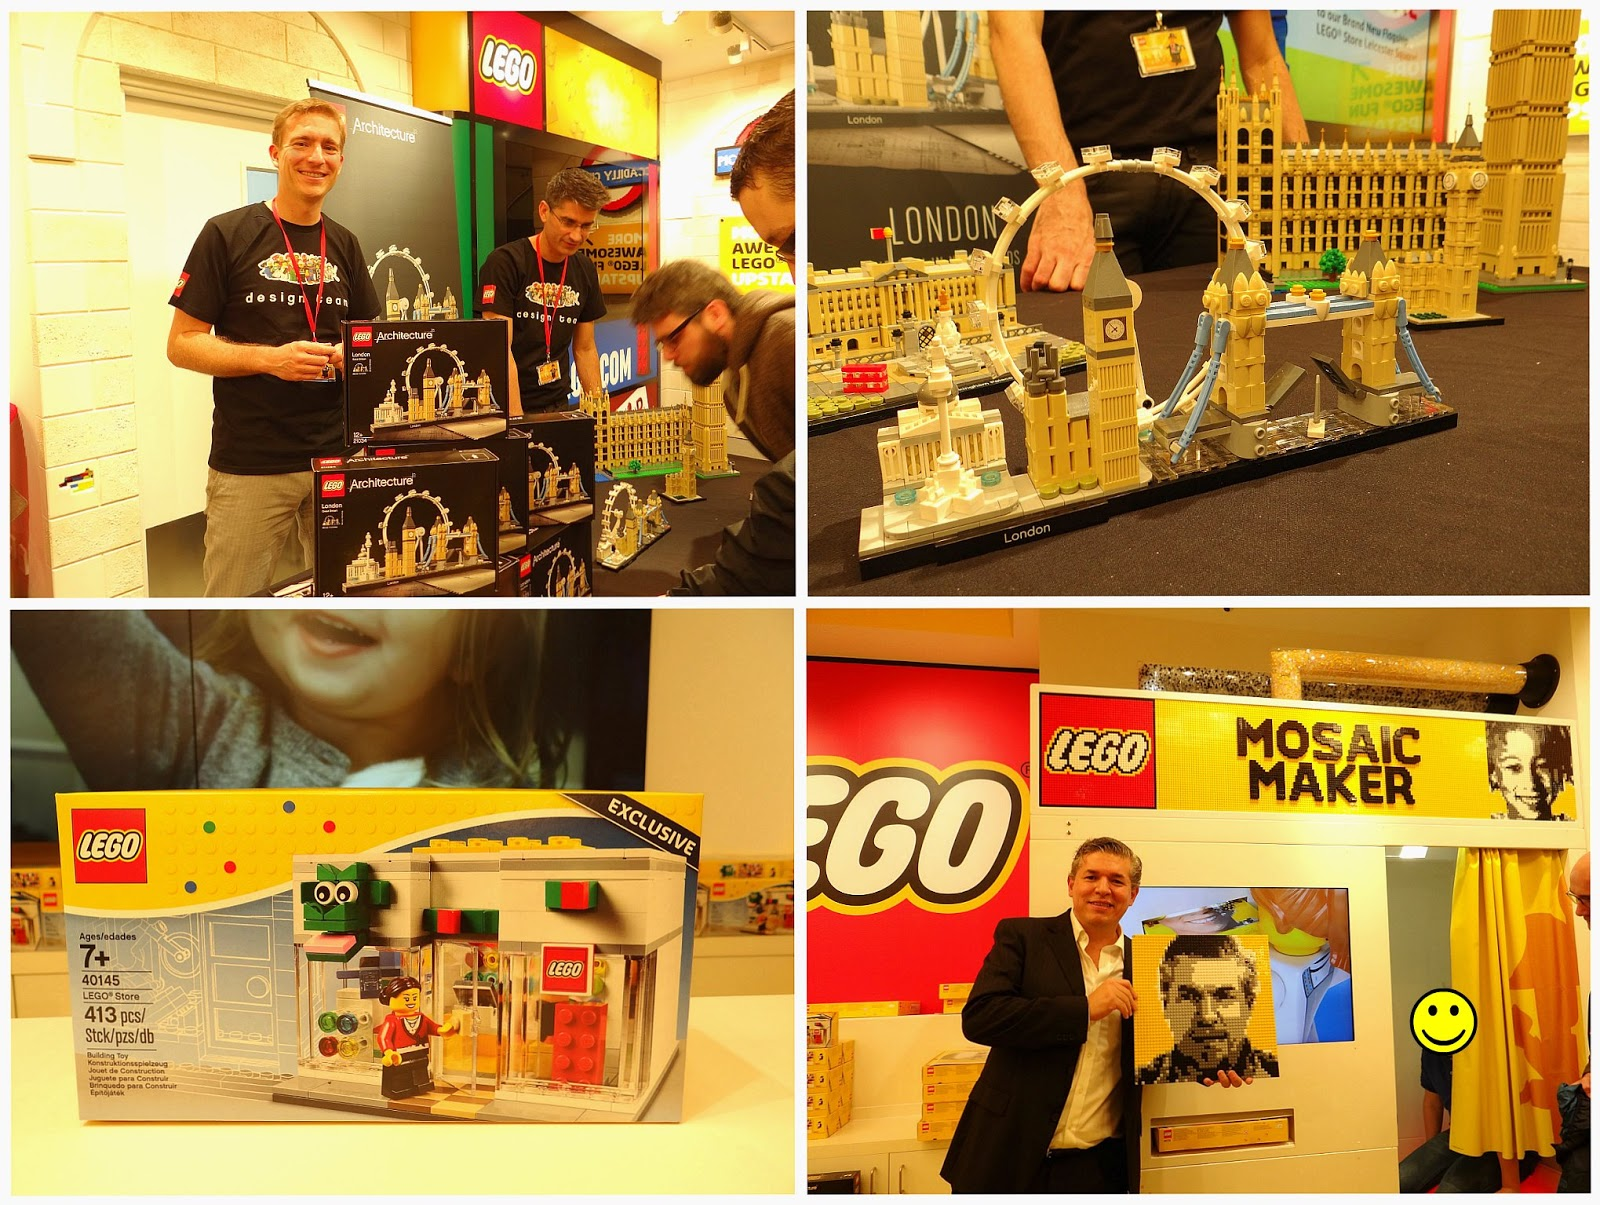 LEGO Store London, Largest LEGO Store in the world, London Landmark for Kids